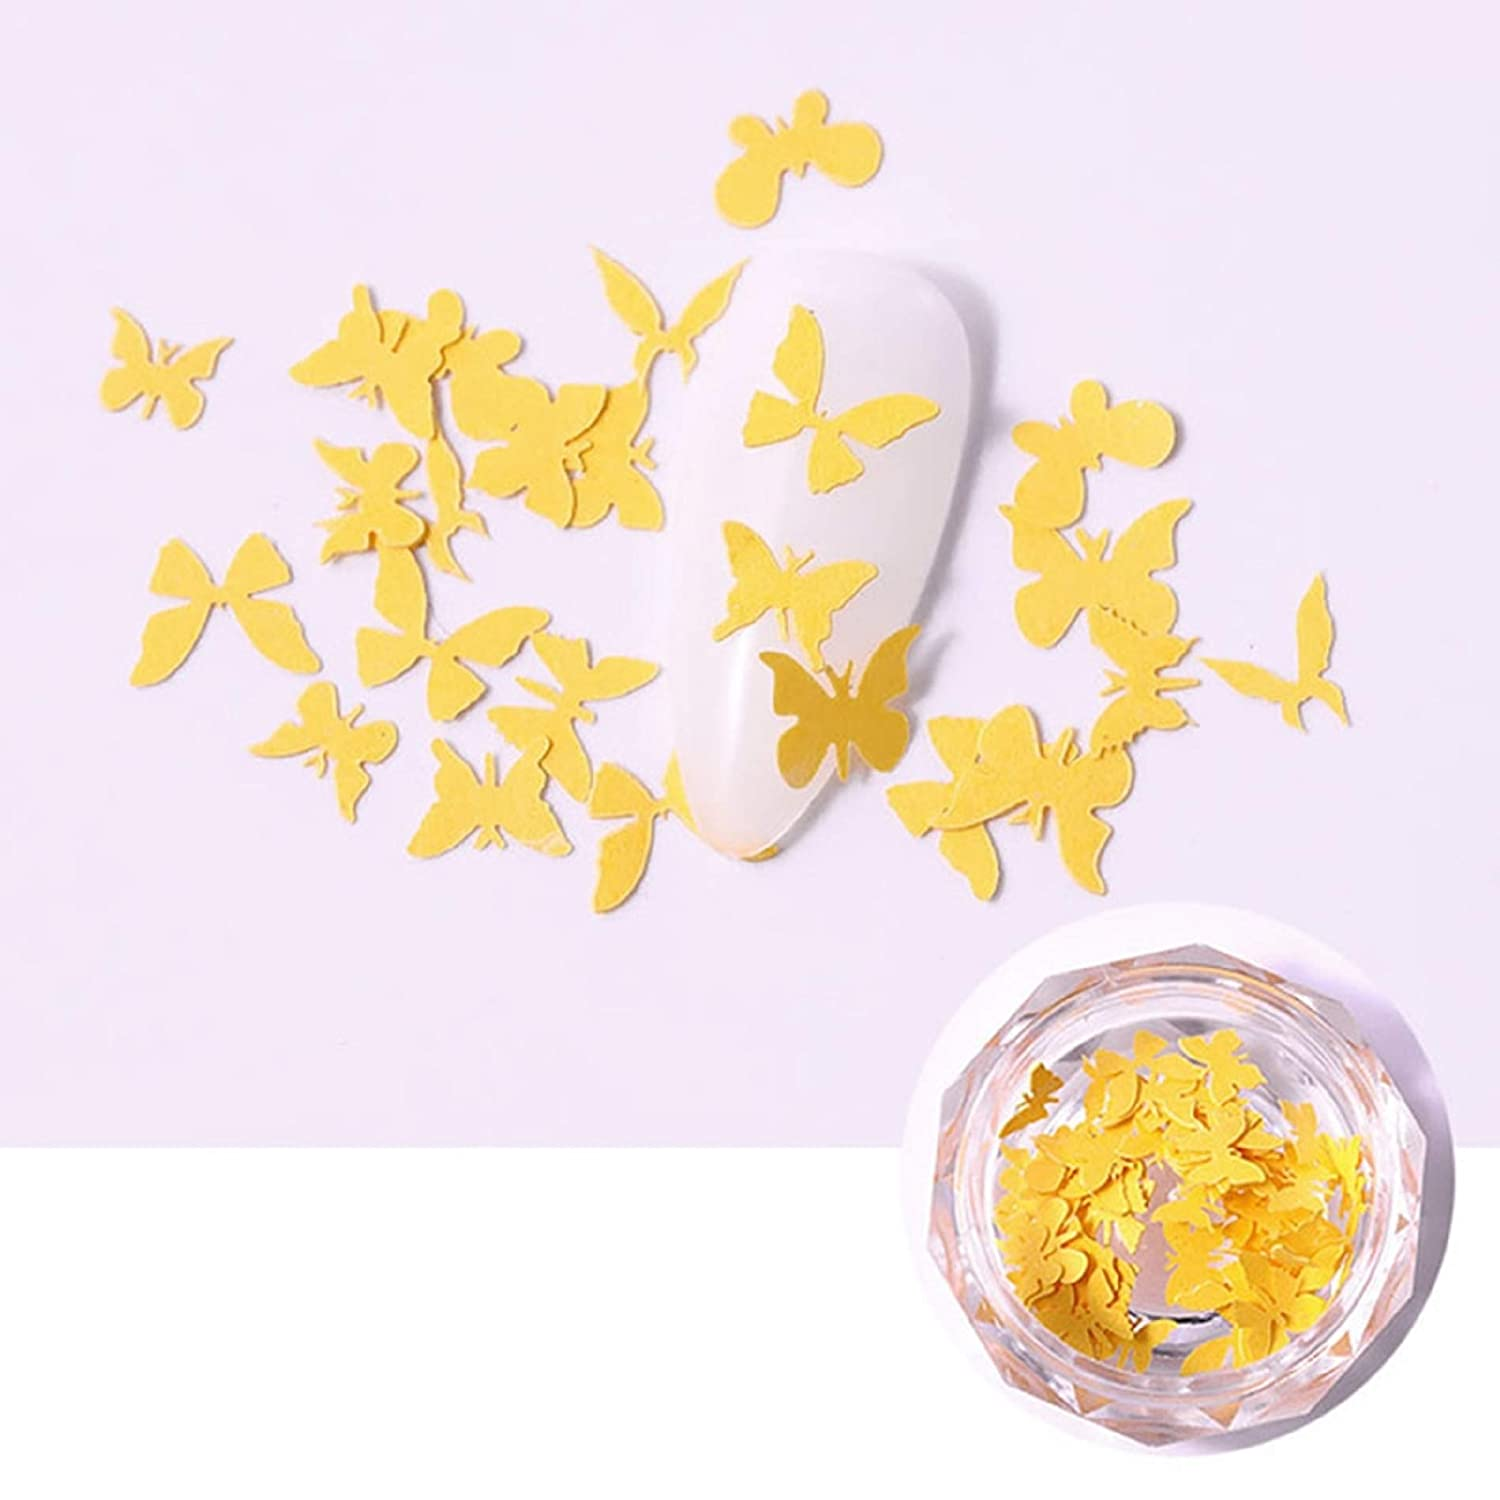 12 Sheets 3D Colorful Butterfly Nail Sticker Nail Art Transfer Decals Decoration Manicure Tools New Designs Nail Sticker (6)